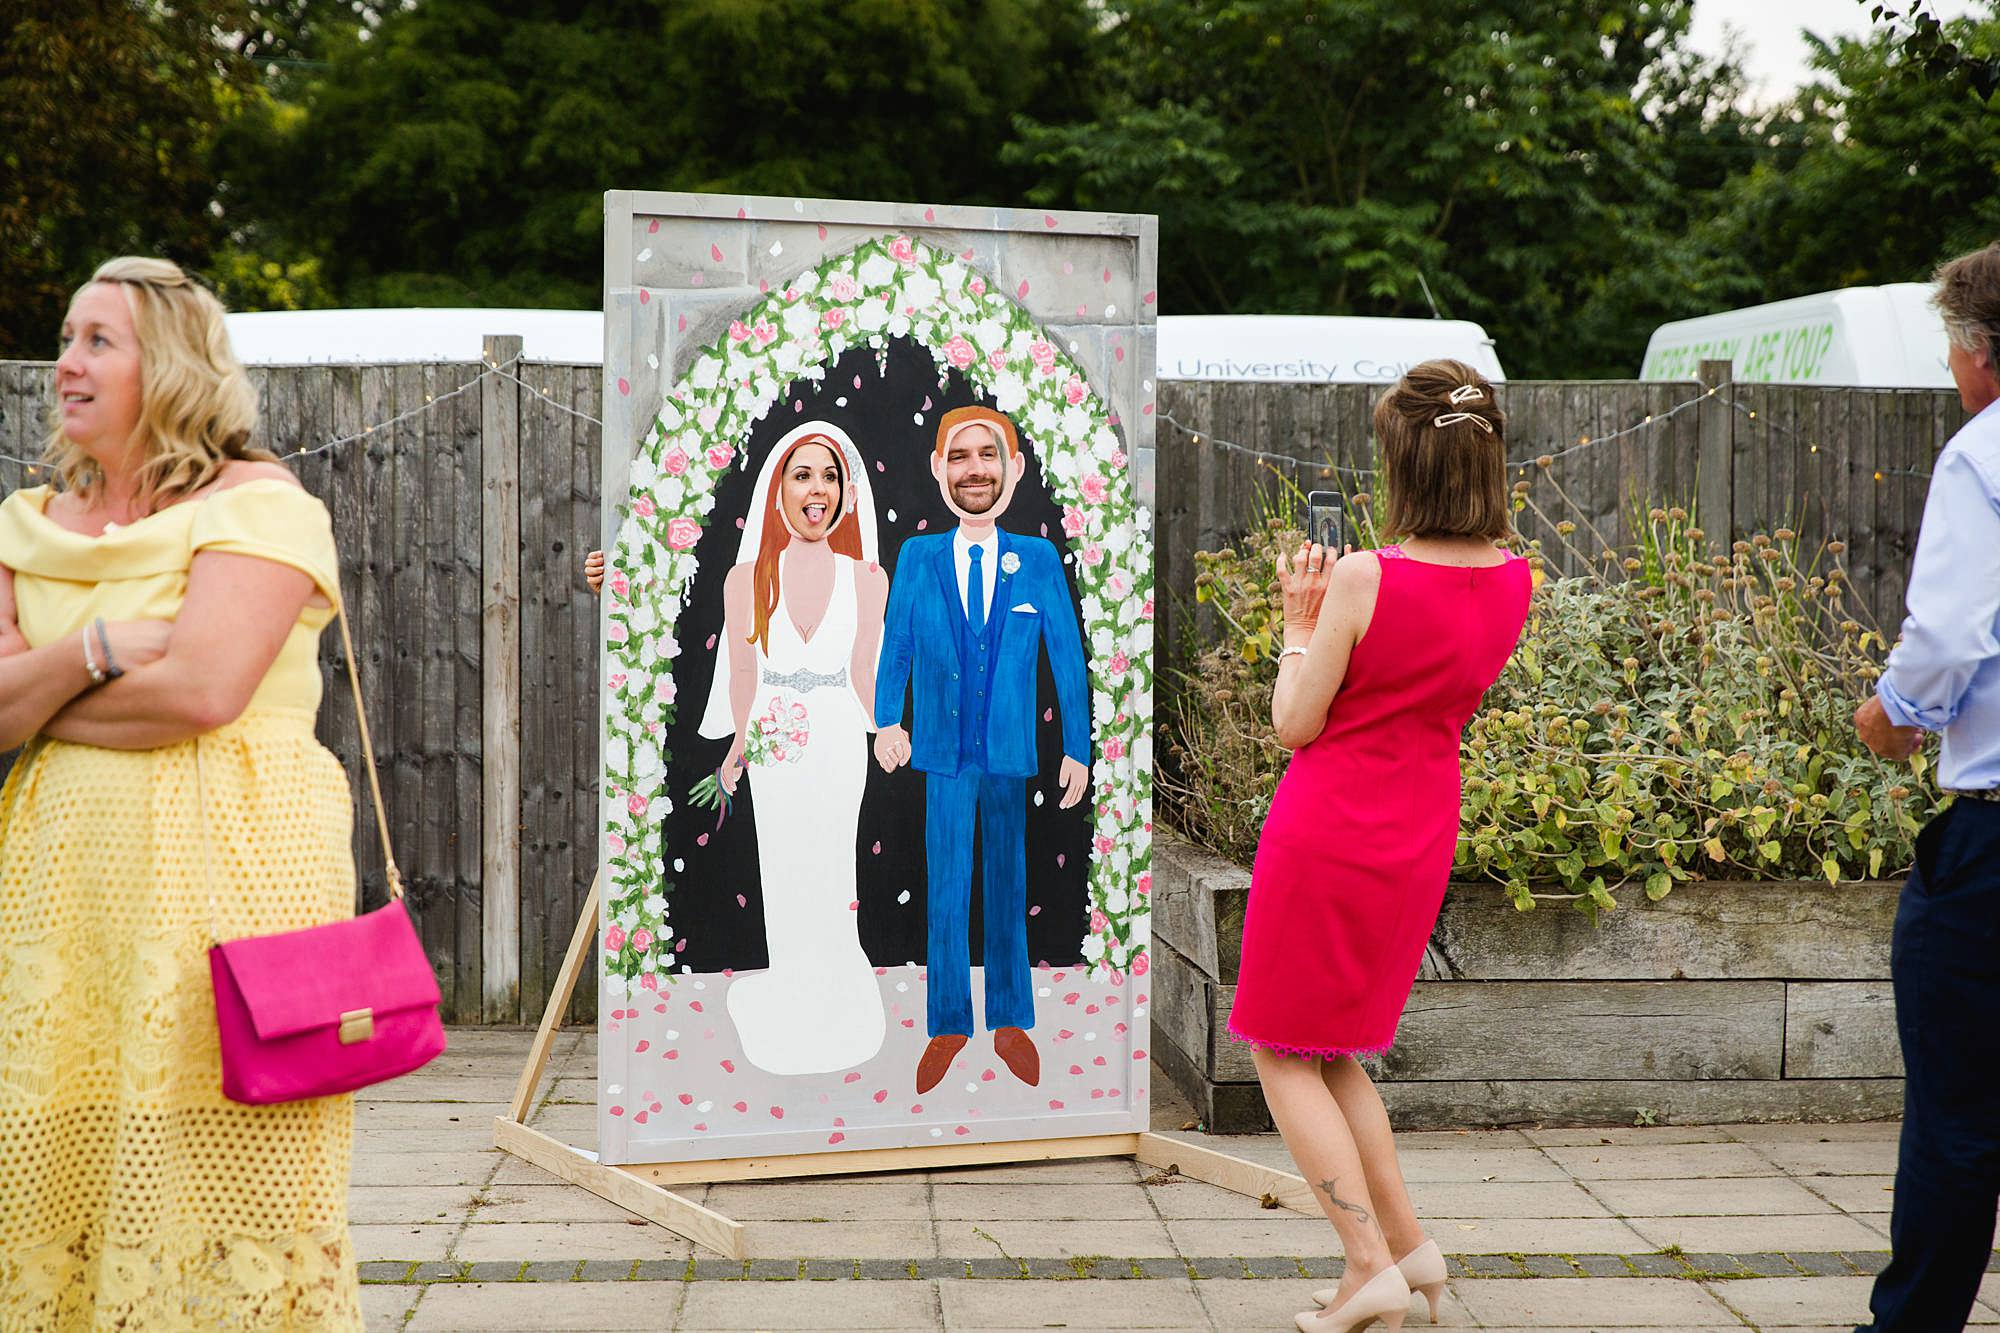 Writtle university college wedding guests enjoying face in hole board